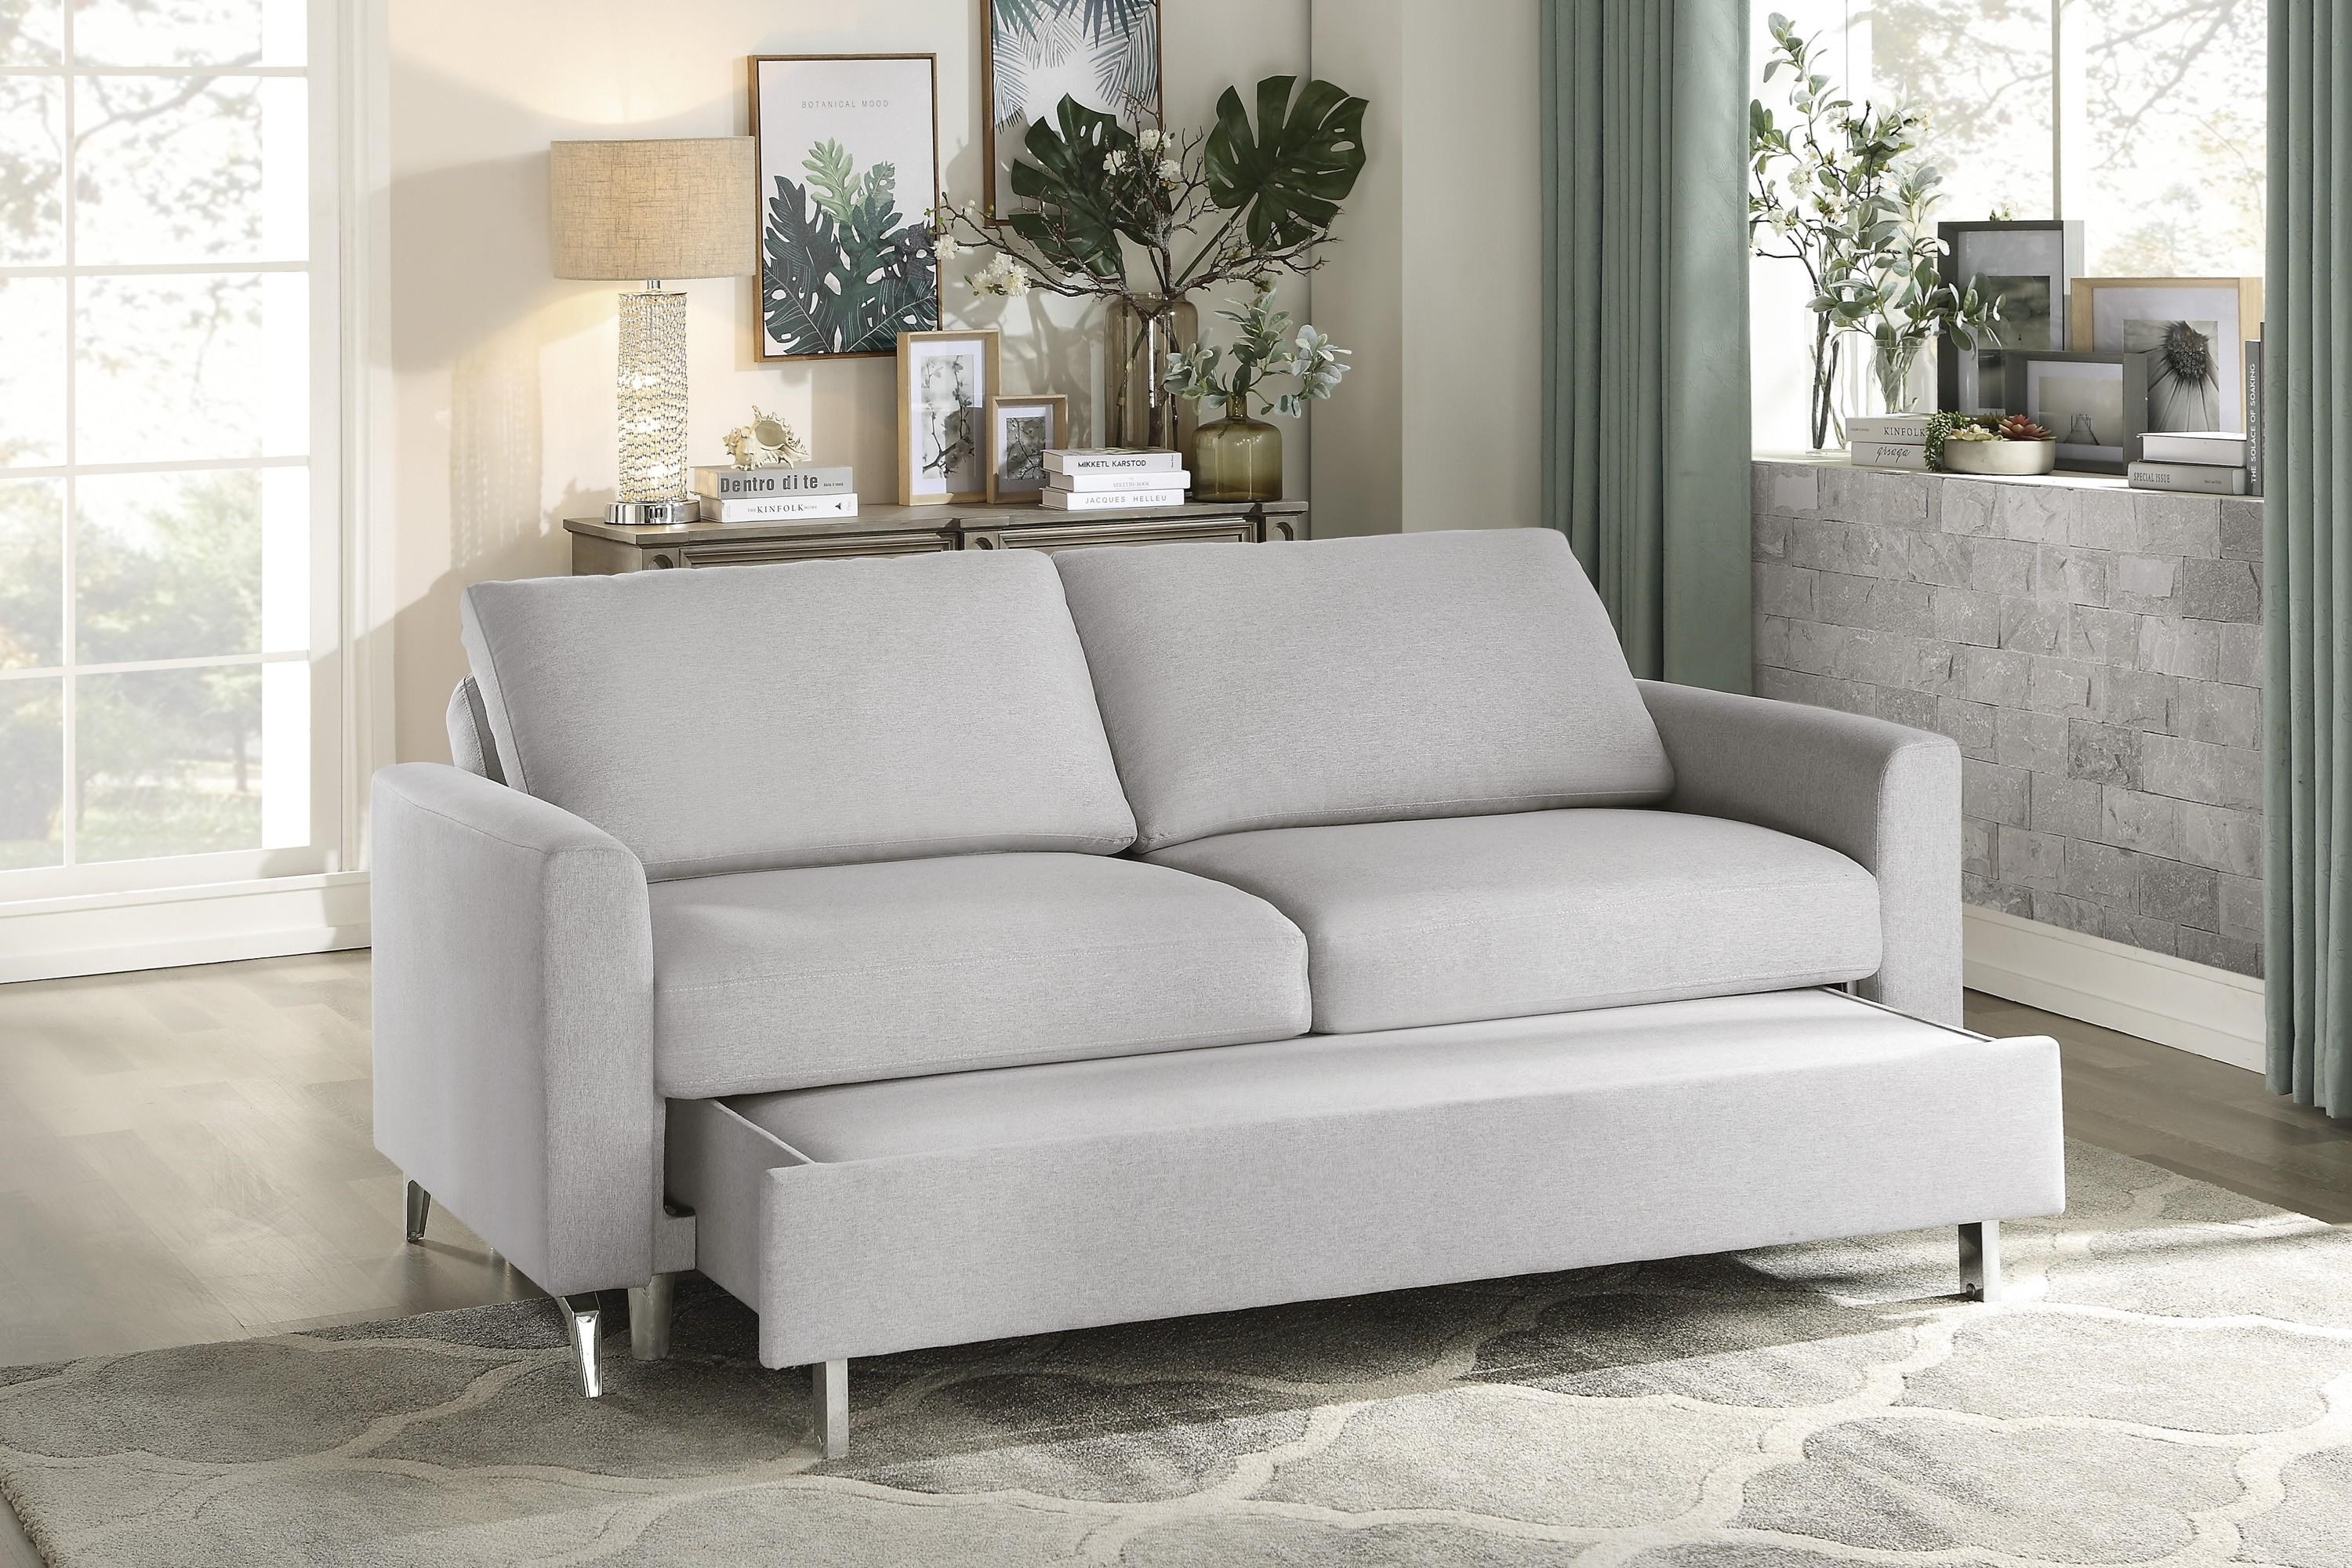 9525GRY Convertible Sleeper Sofa by Homelegance at Beck's Furniture